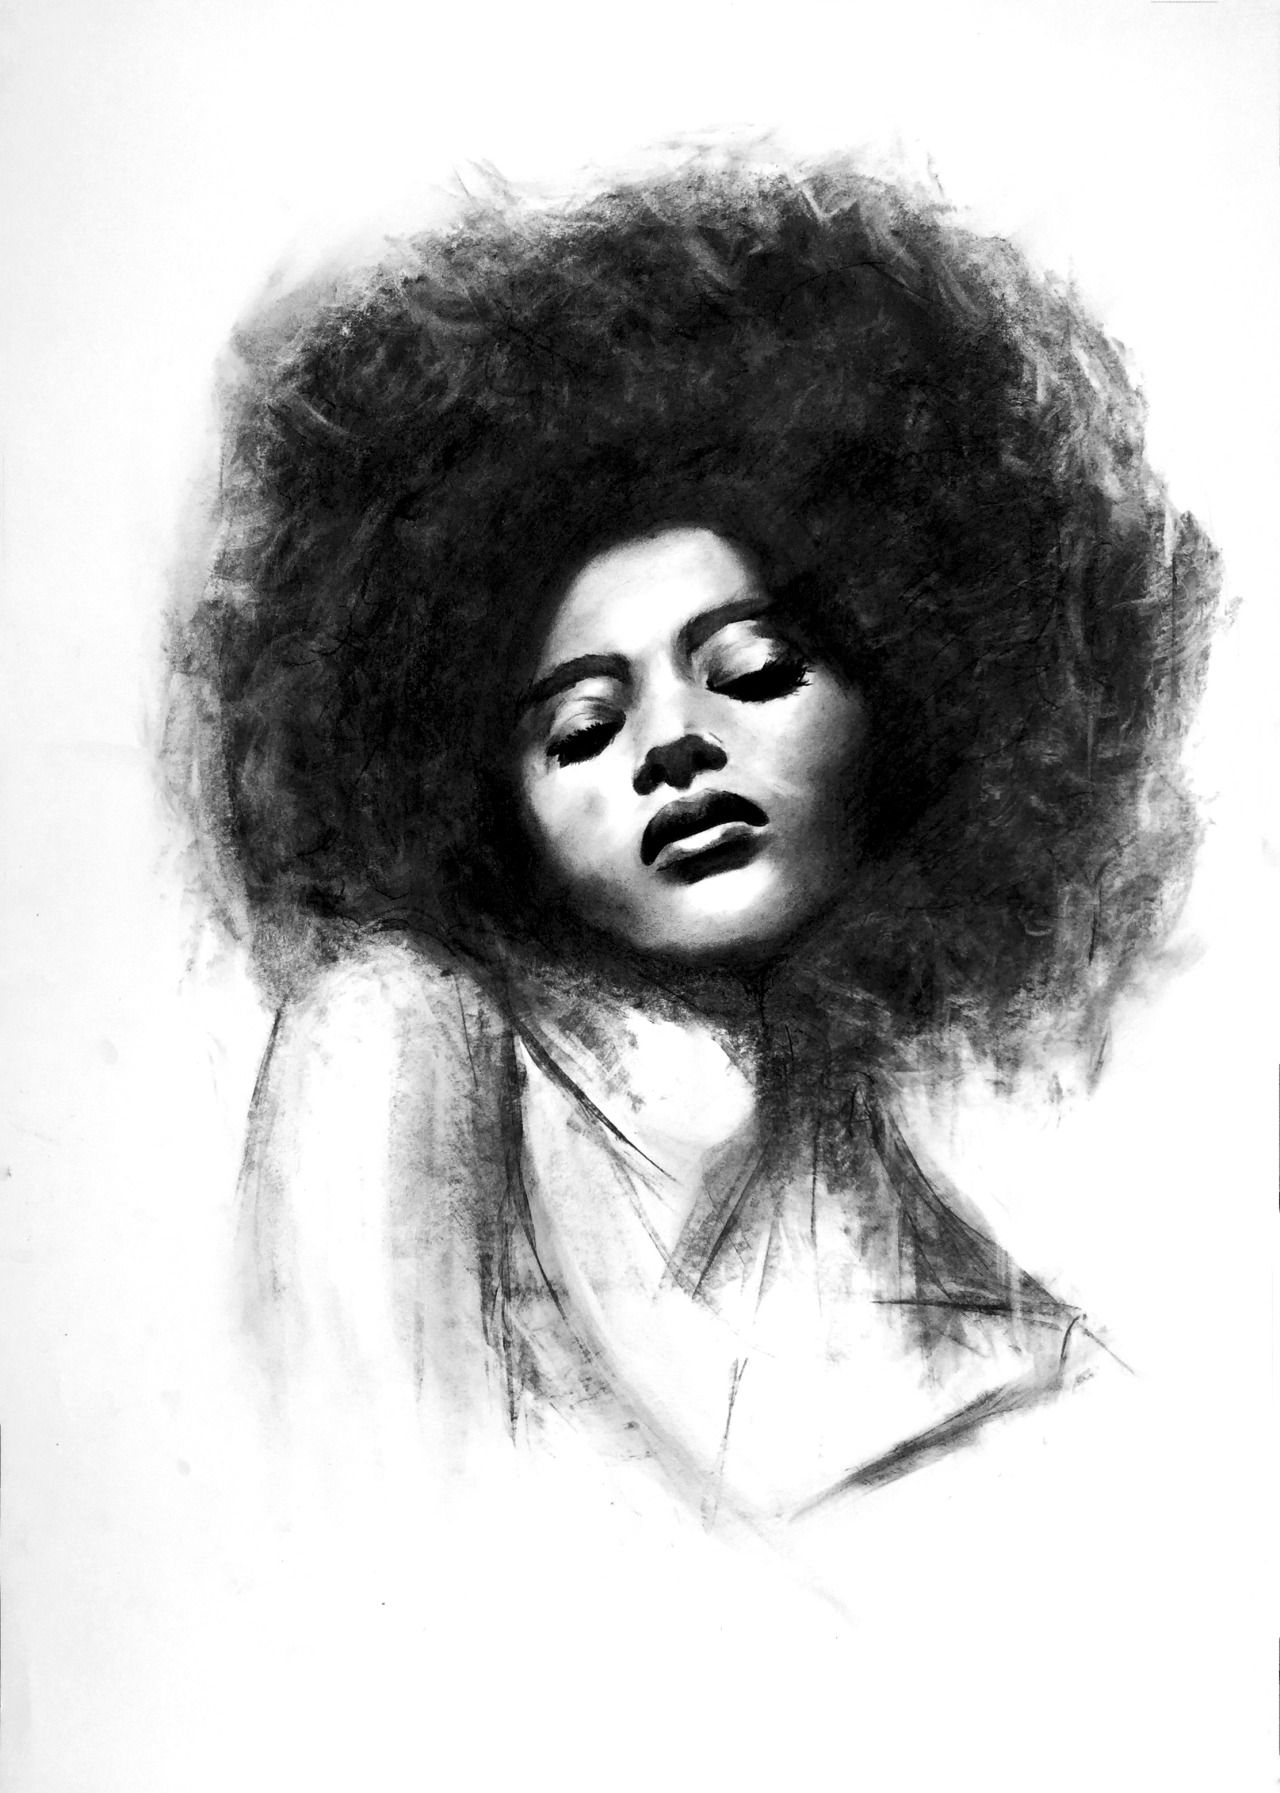 afro girl. charcoal piece denny